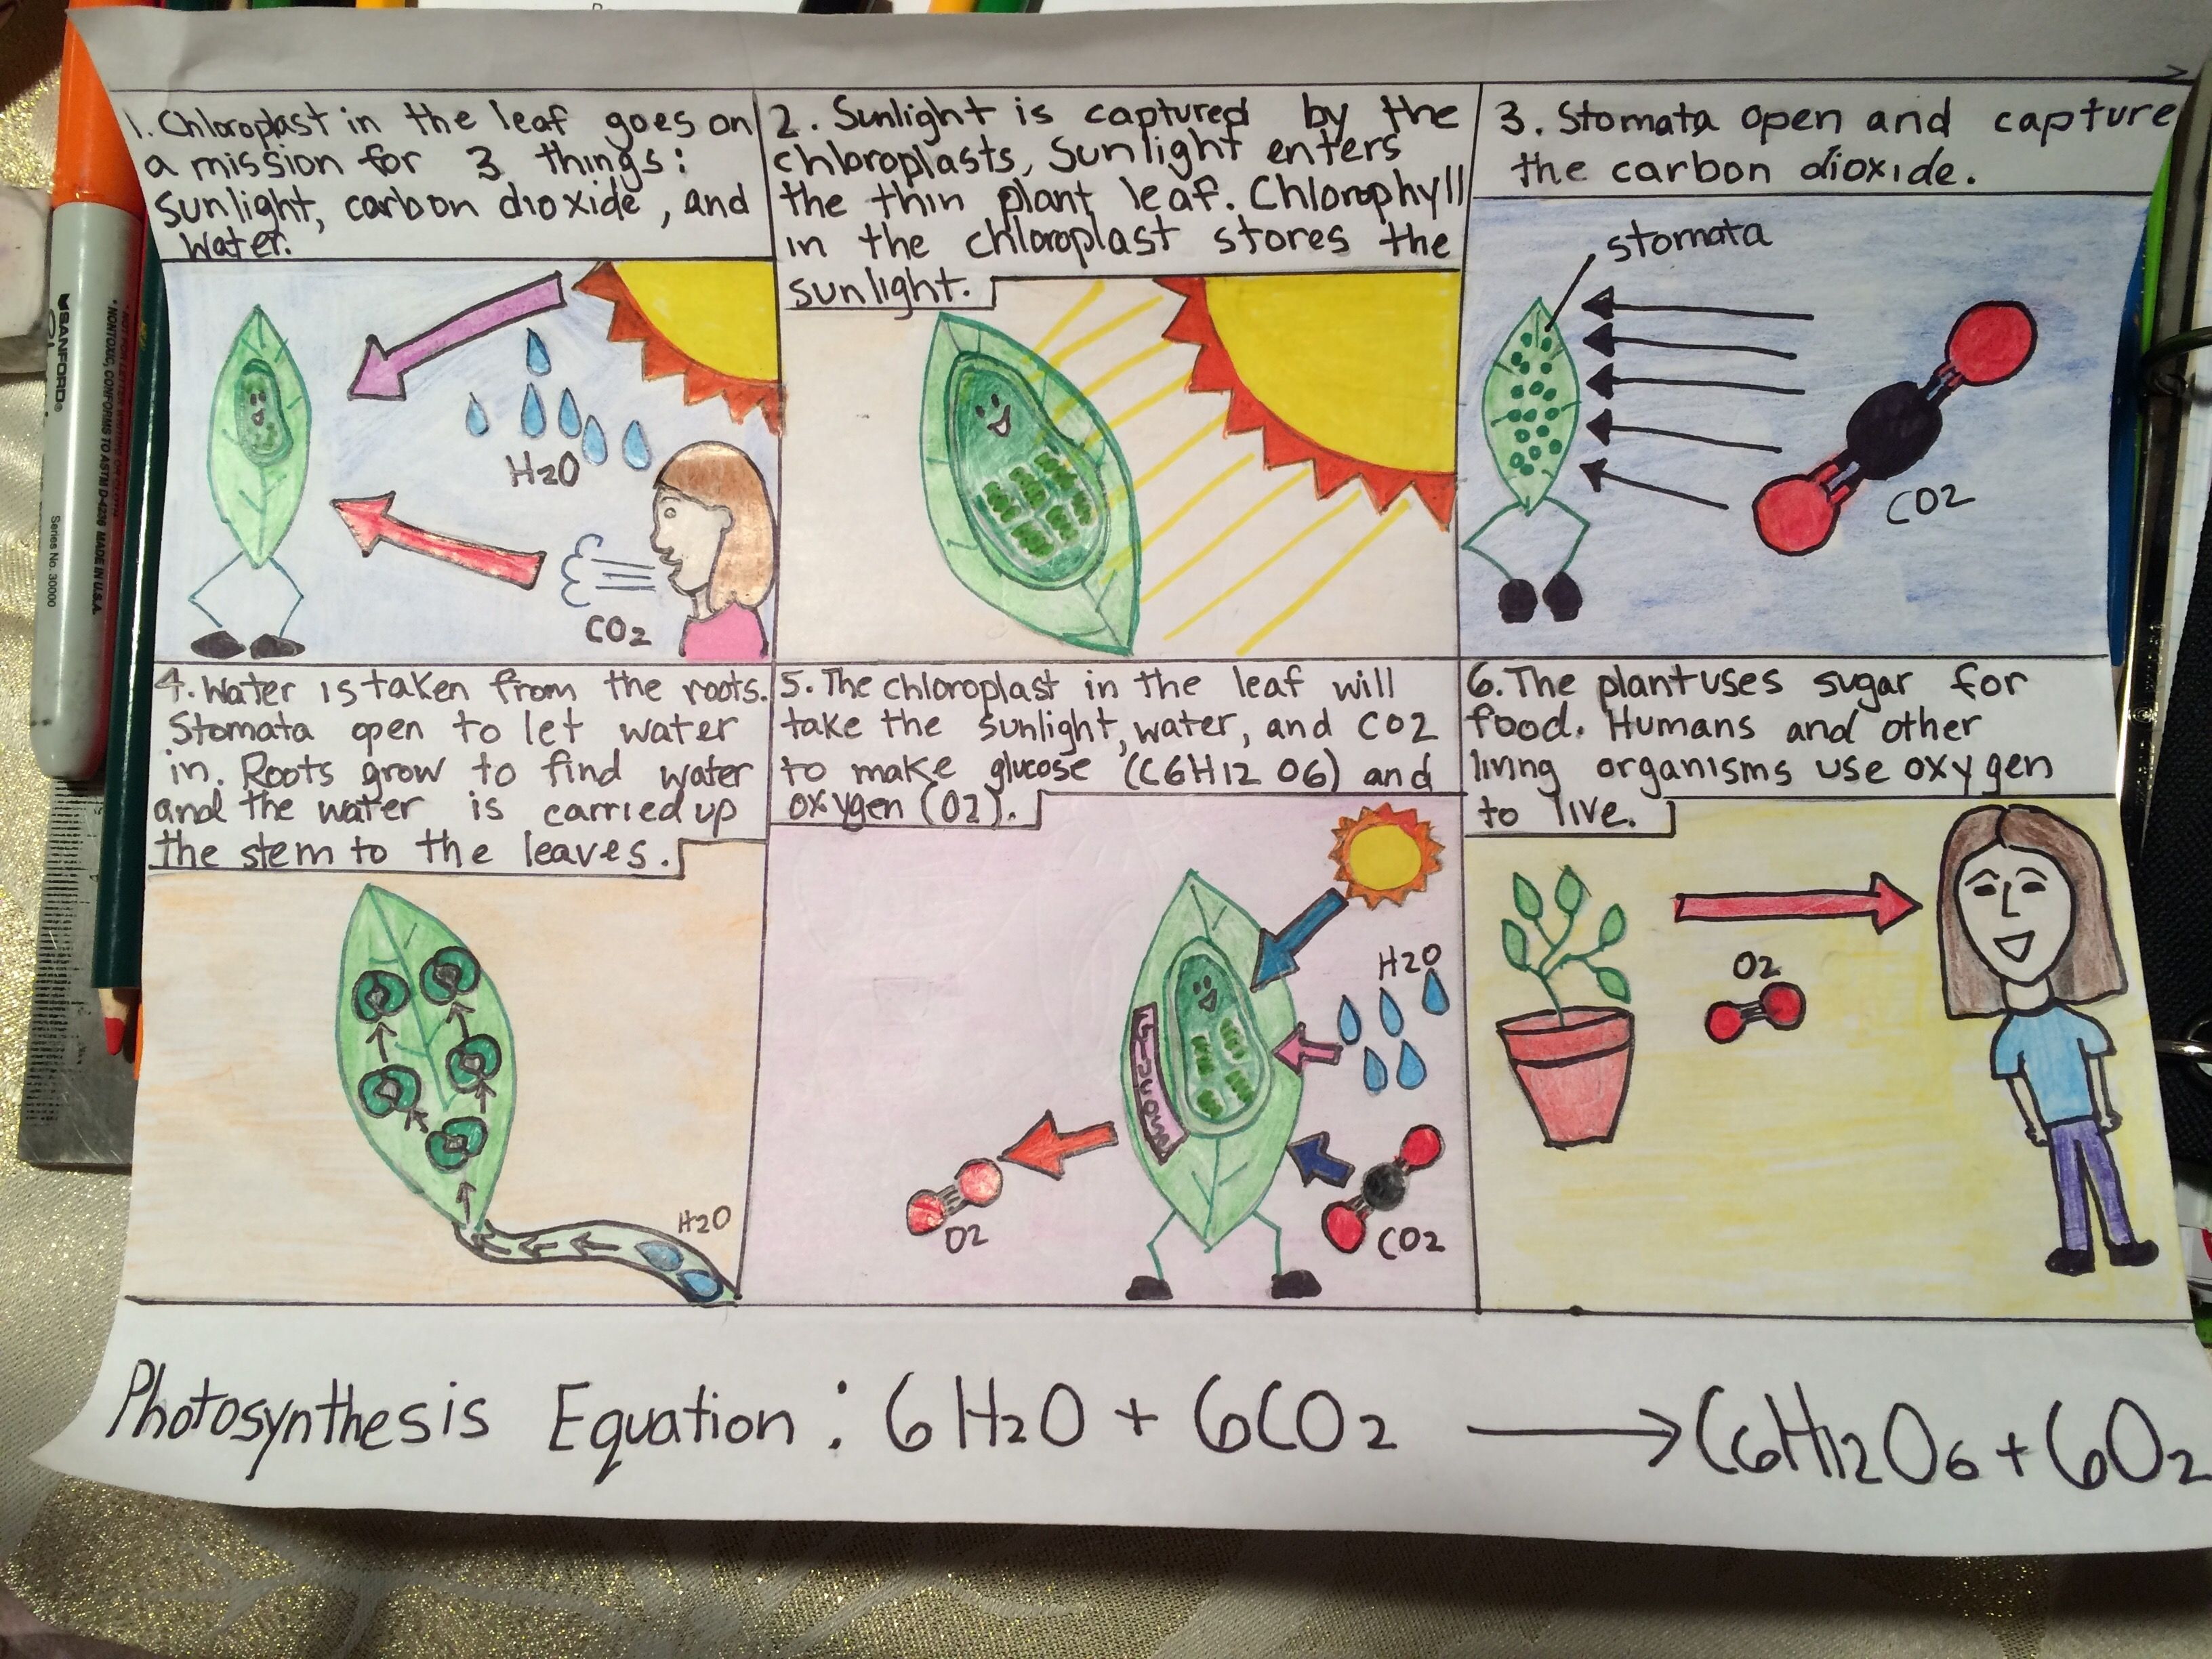 Photosynthesis Comic Strip 7th Grade Science